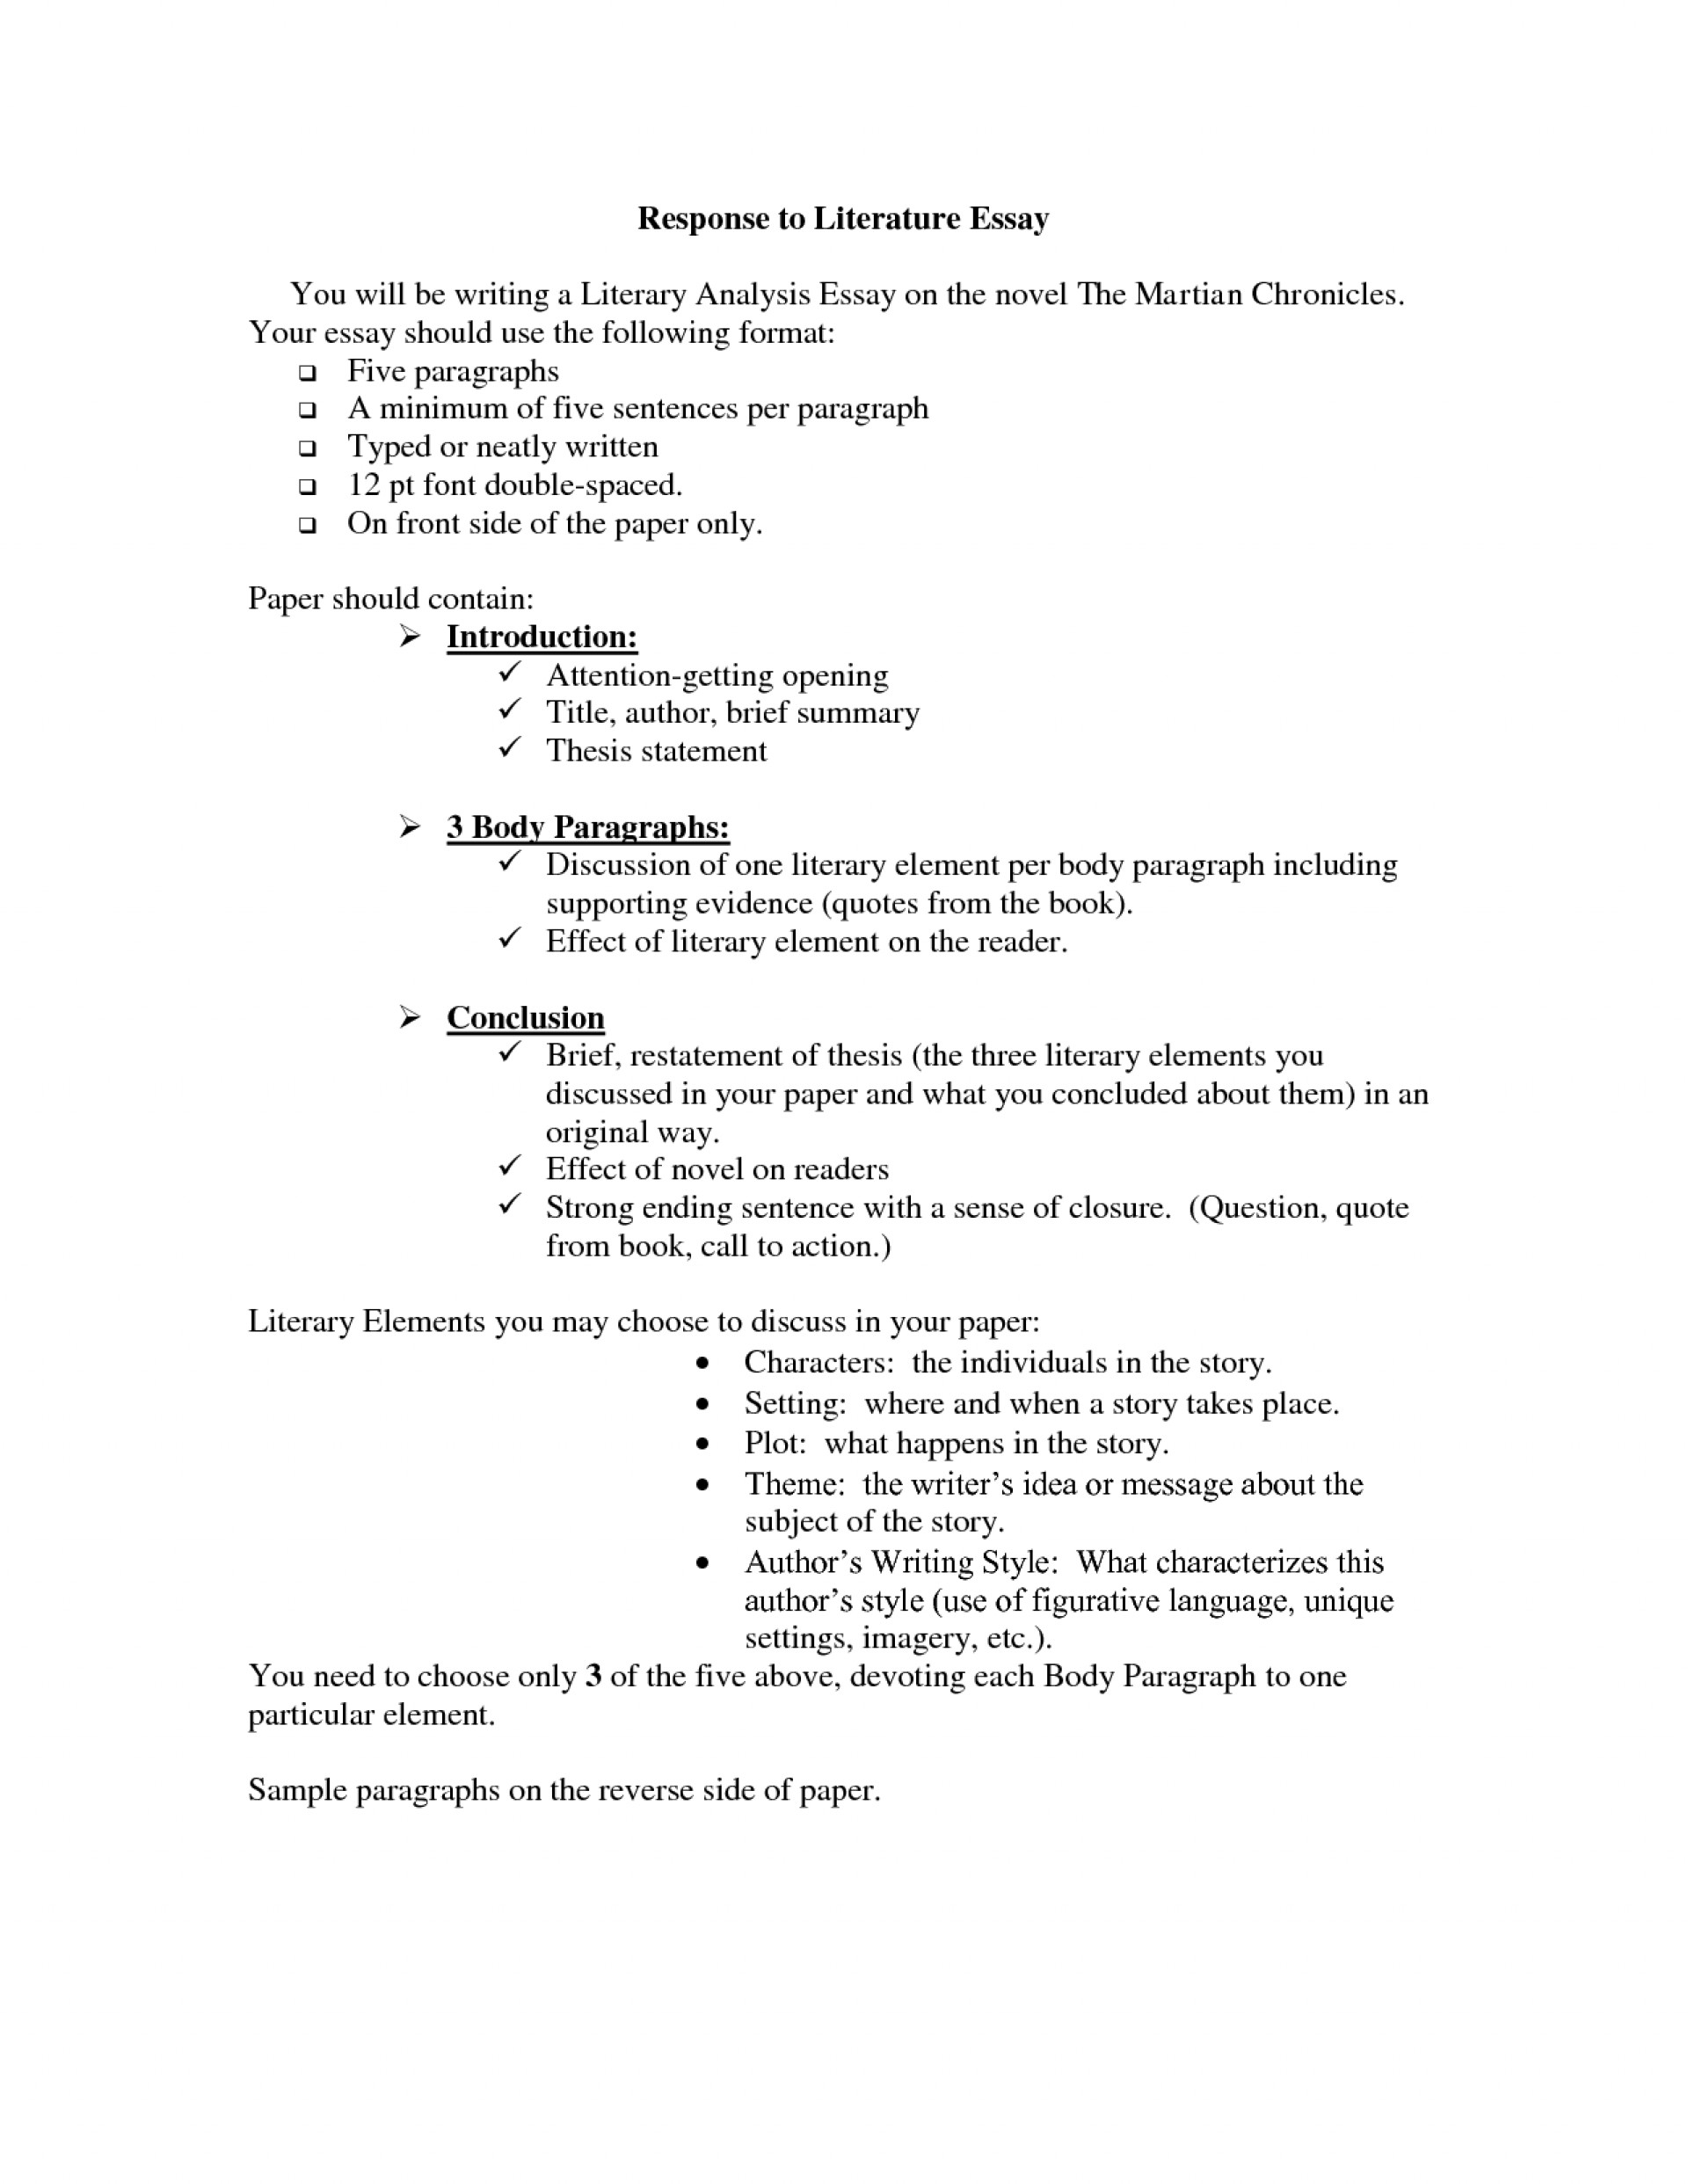 002 Literary Essay Help Responseature Character Sketch Macbeth Introduction College To Example 5th Grade 10th 8th 4th Examples Student Responding Sample 9th High School 6th 3rd How Write Shocking A On 1920